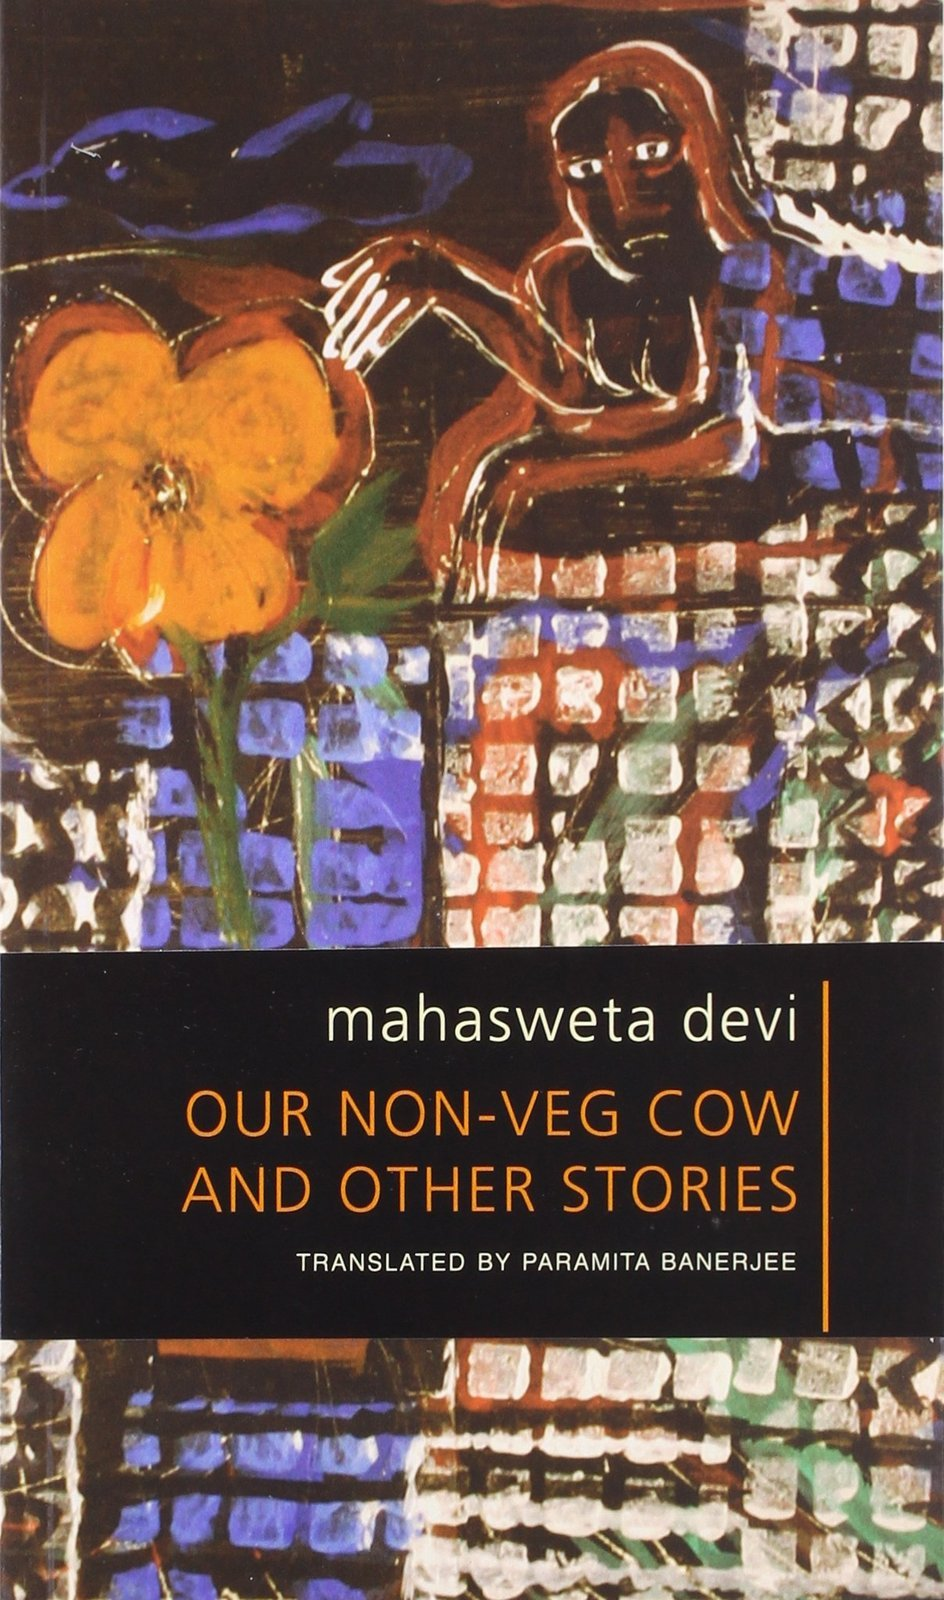 an analysis of the short story dhowli by mahasweta devi Transcript of dhowli by mahasweta devi citation devi, m dhowli other voices, other vistas: short stories from africa, china, india, japan, and latin america.